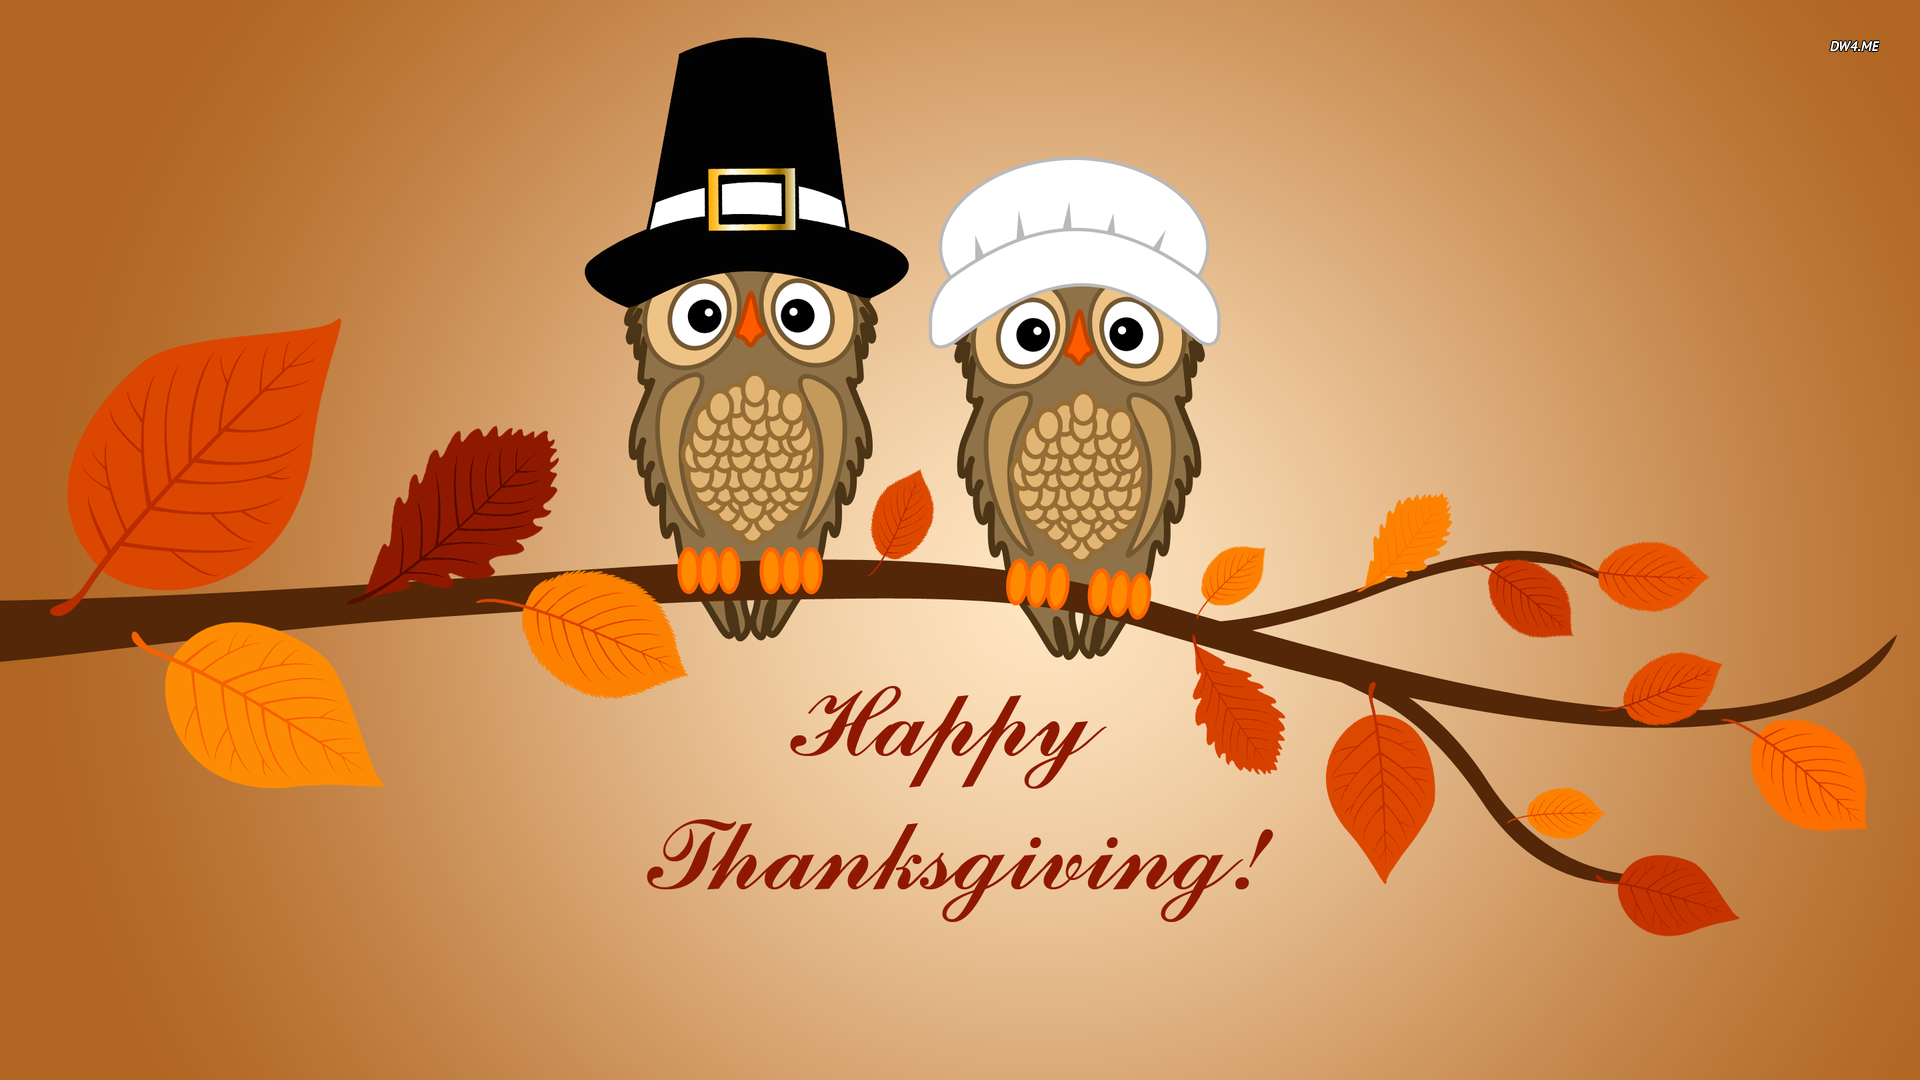 Happy Thanksgiving >> Happy Thanksgiving To All Our Members And Friends Project Change